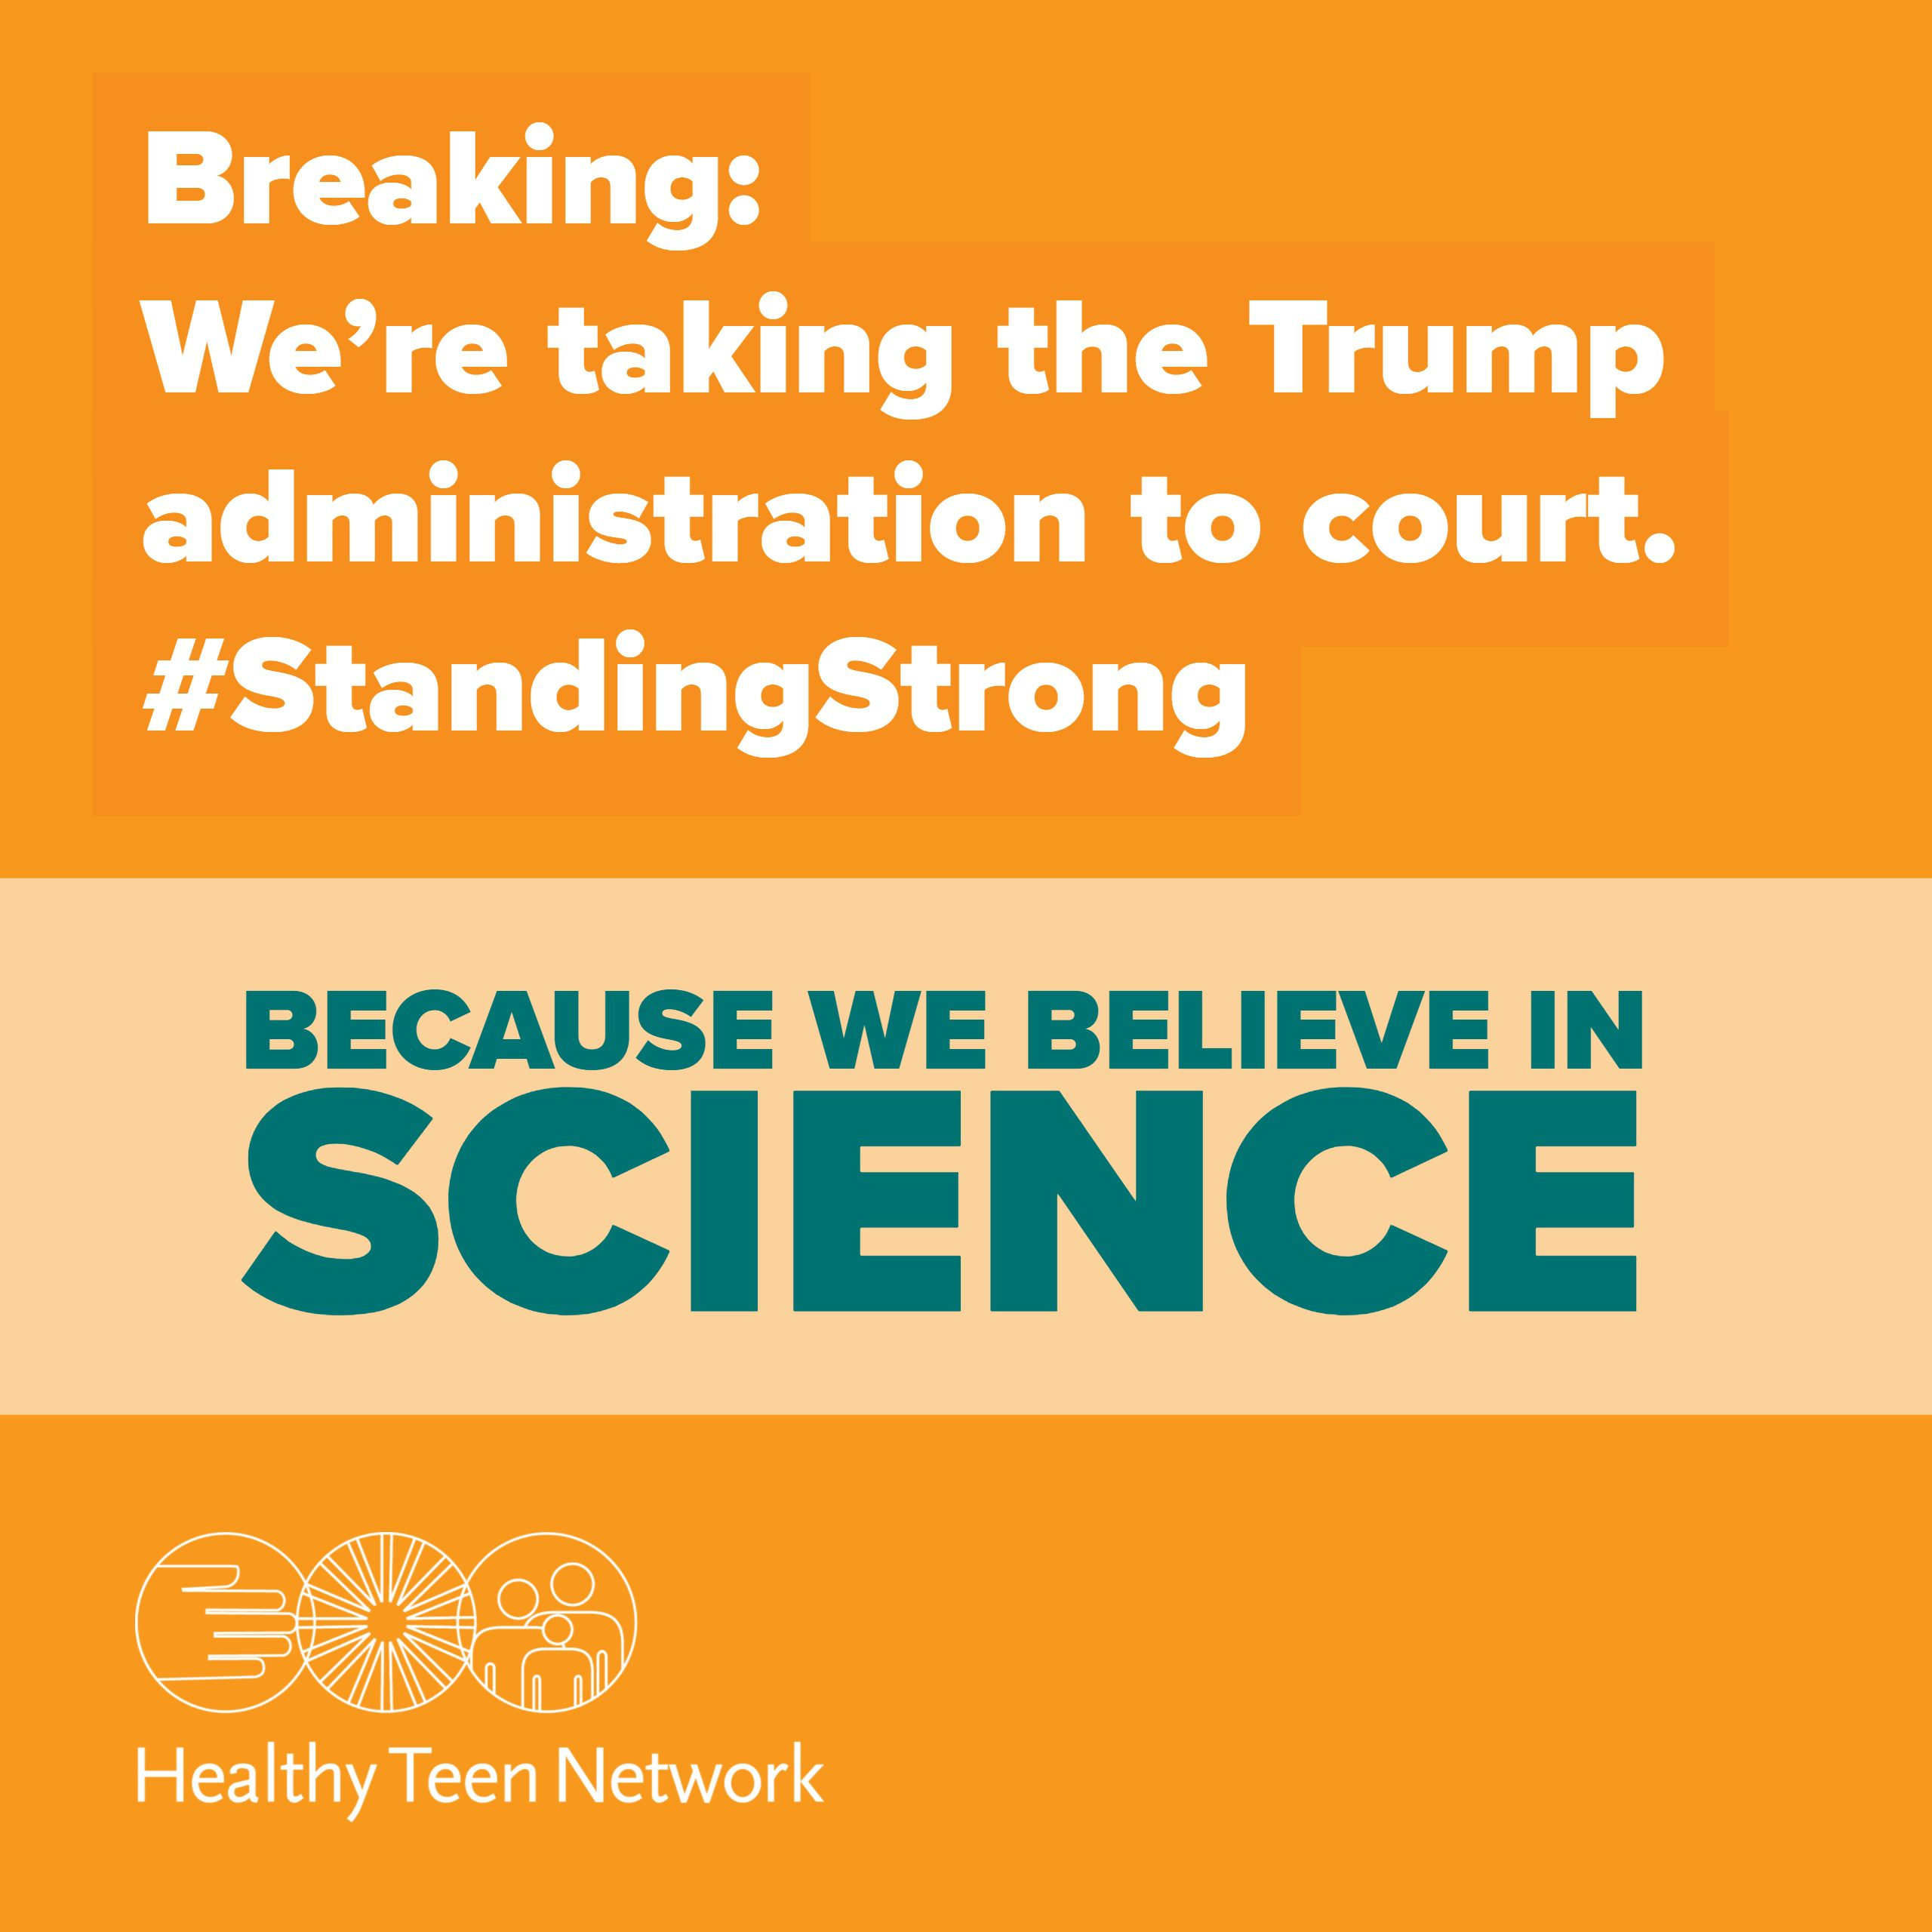 """Image of word art: """"Breaking: We're taking the Trump administration to court. Becaues we believe in Science. #standingstrong""""and Healthy Teen Network logo"""